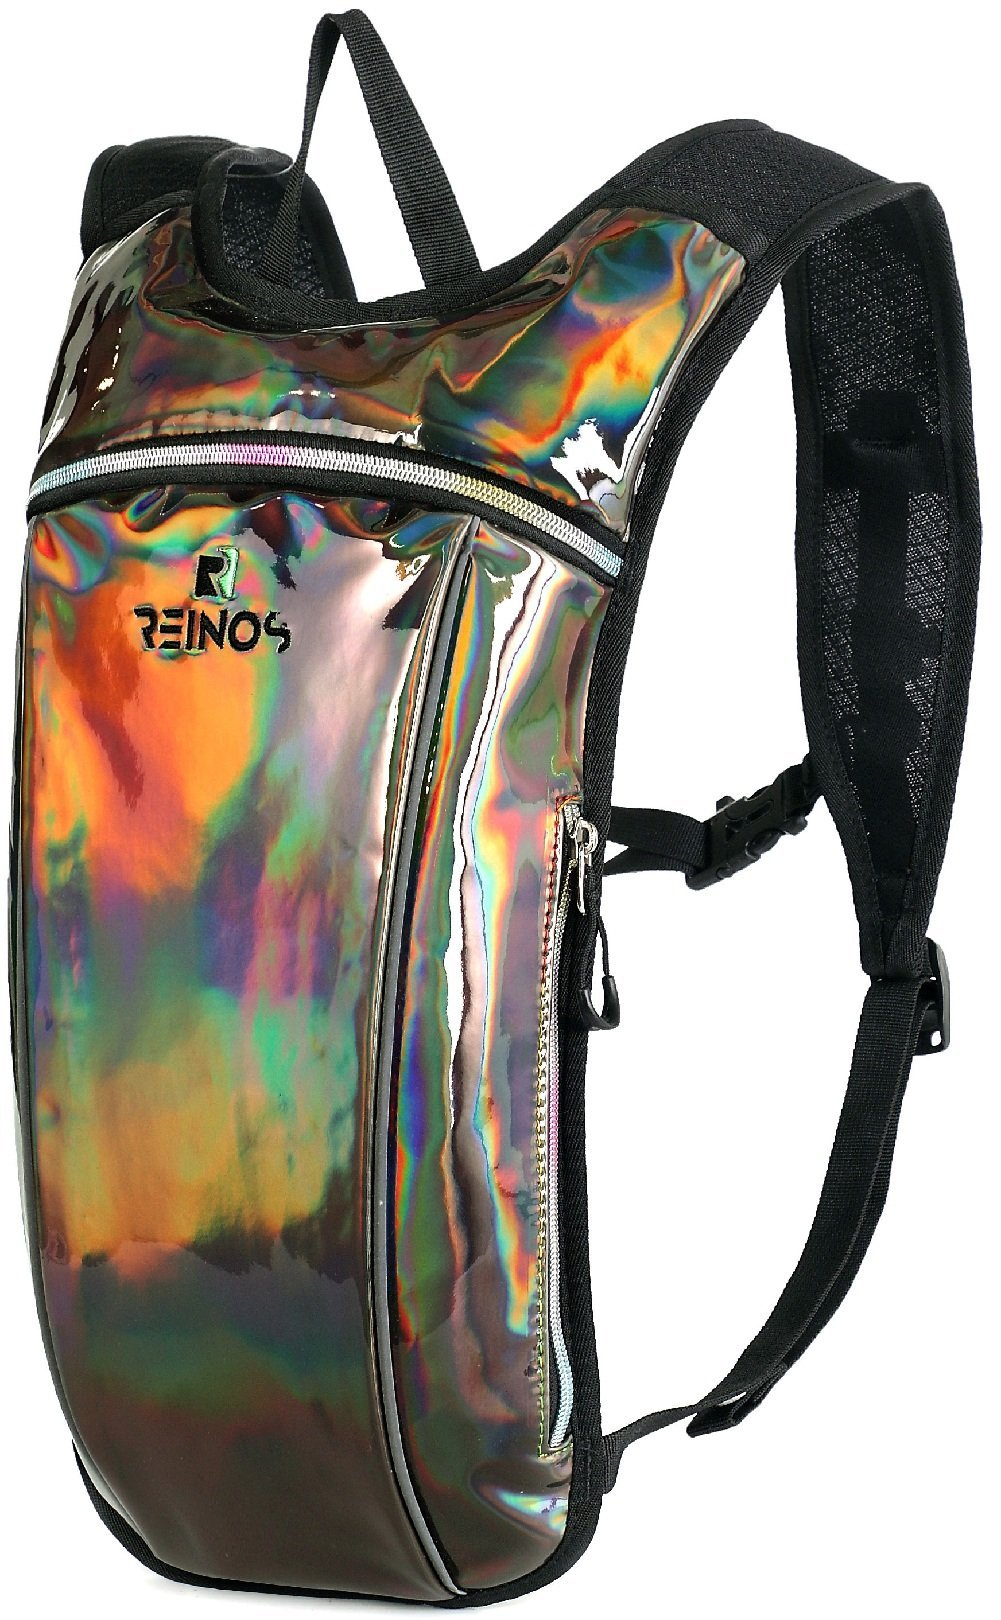 REINOS Hydration Backpack - Light Water Pack - 2L Water Bladder Included for Running, Hiking, Biking, Festivals, Raves (Brown) by REINOS